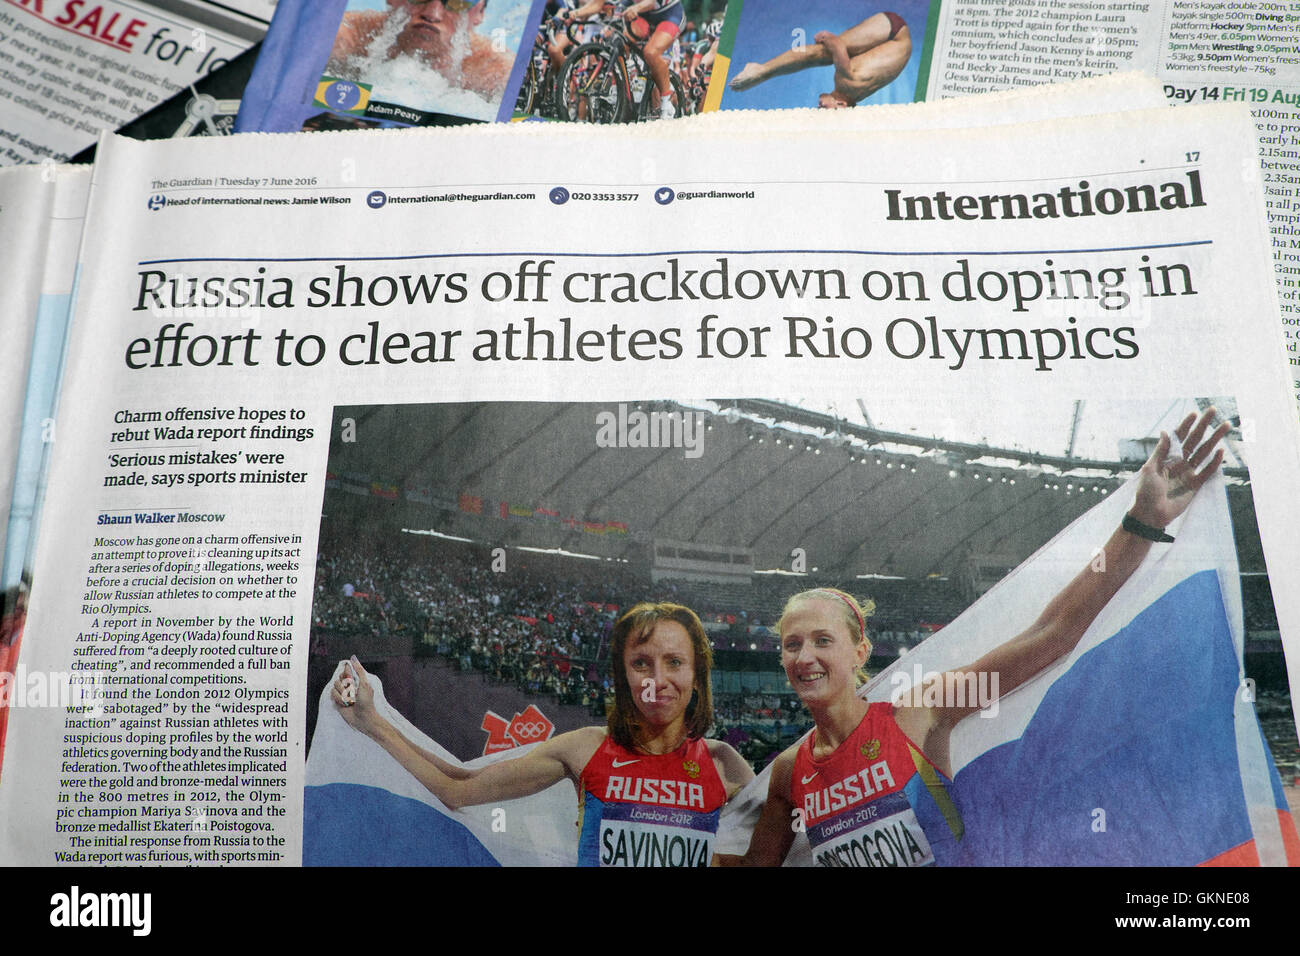 Guardian newspaper article headline   'Russia shows off crackdown on doping in effort to clear athletes for - Stock Image